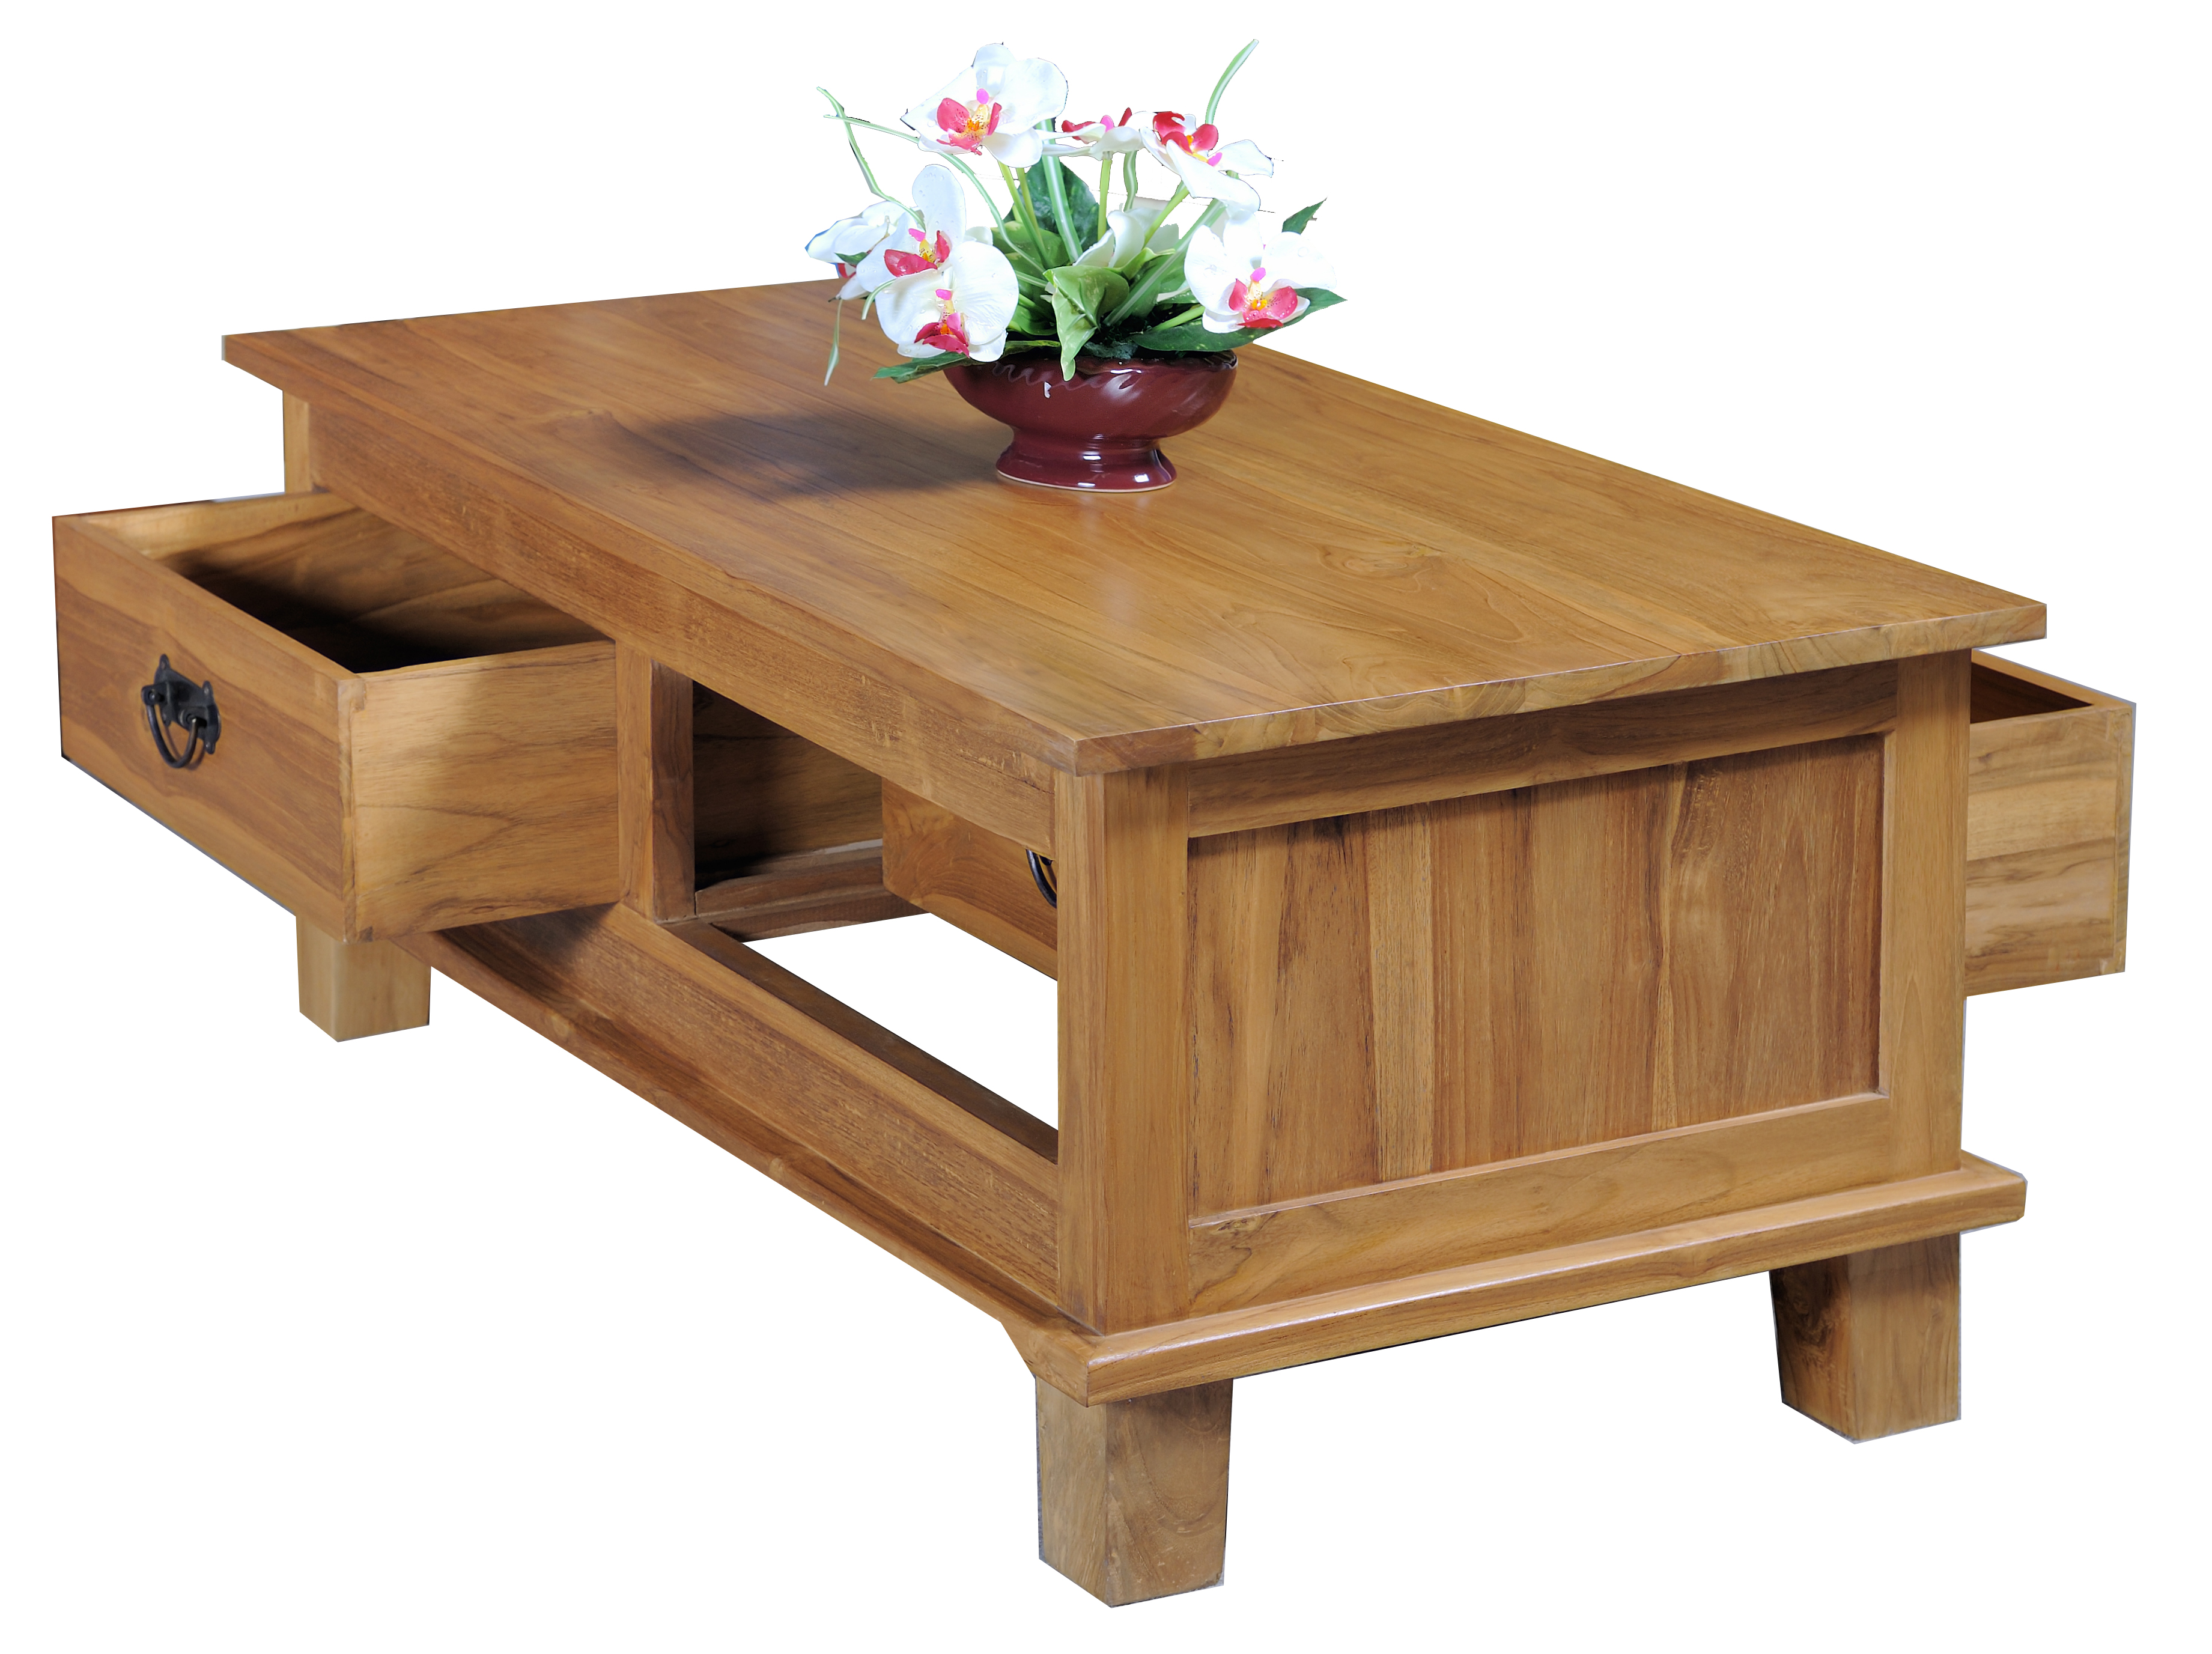 Cecilia Coffee Table Indoor Teak Furniture